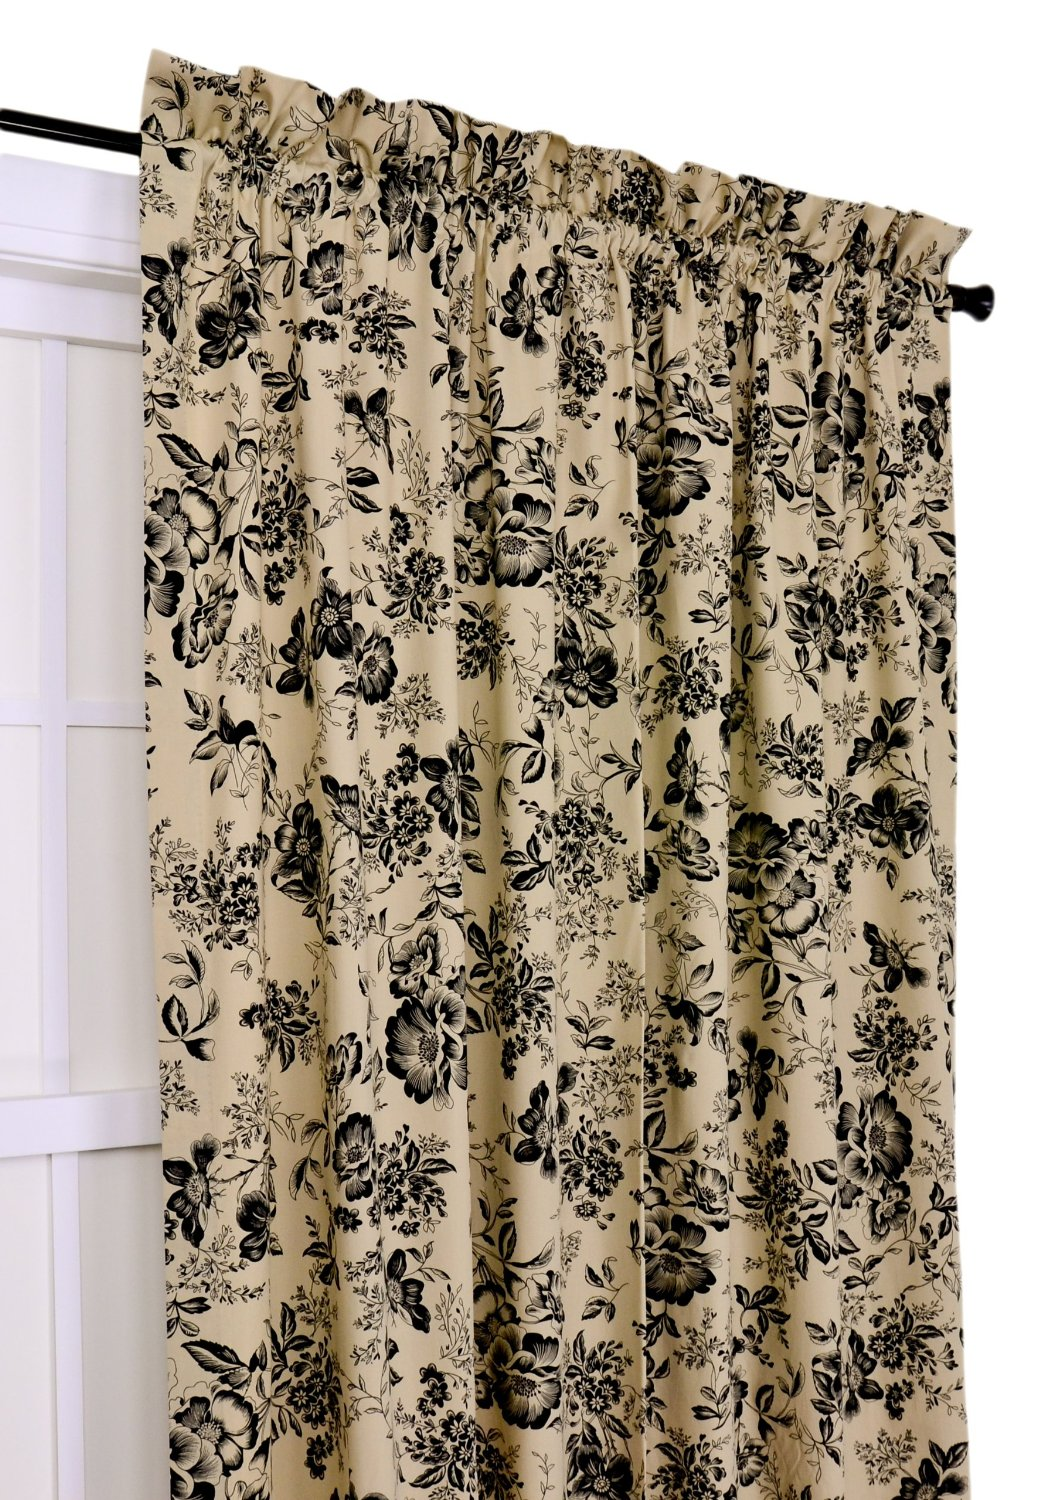 Ellis Curtain Palmer Floral Toile 50-Inch-by-63-Inch Tailored Panel, Black